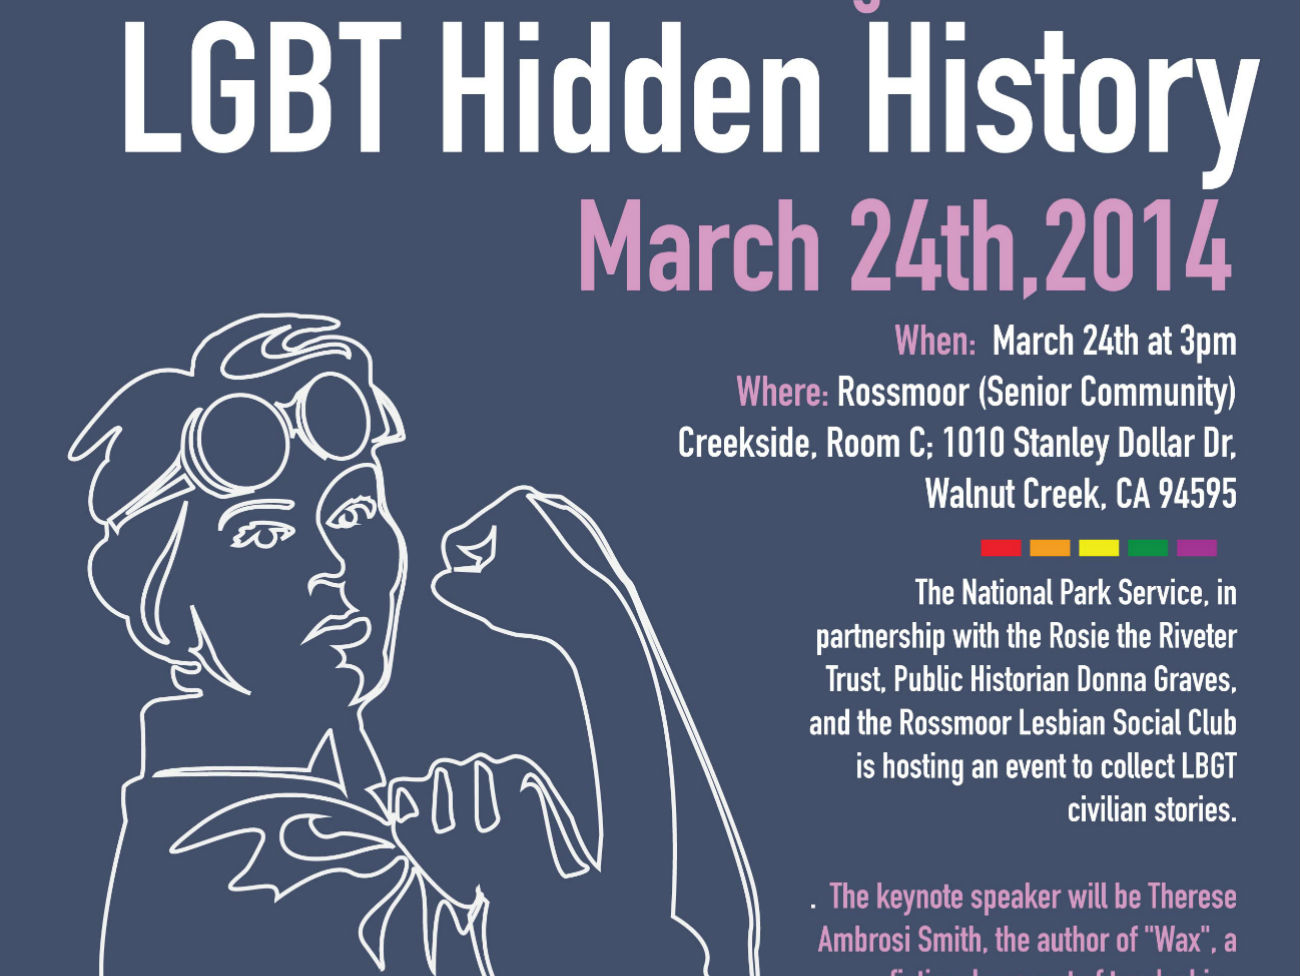 Seeking LGBT stories from WWII event flier